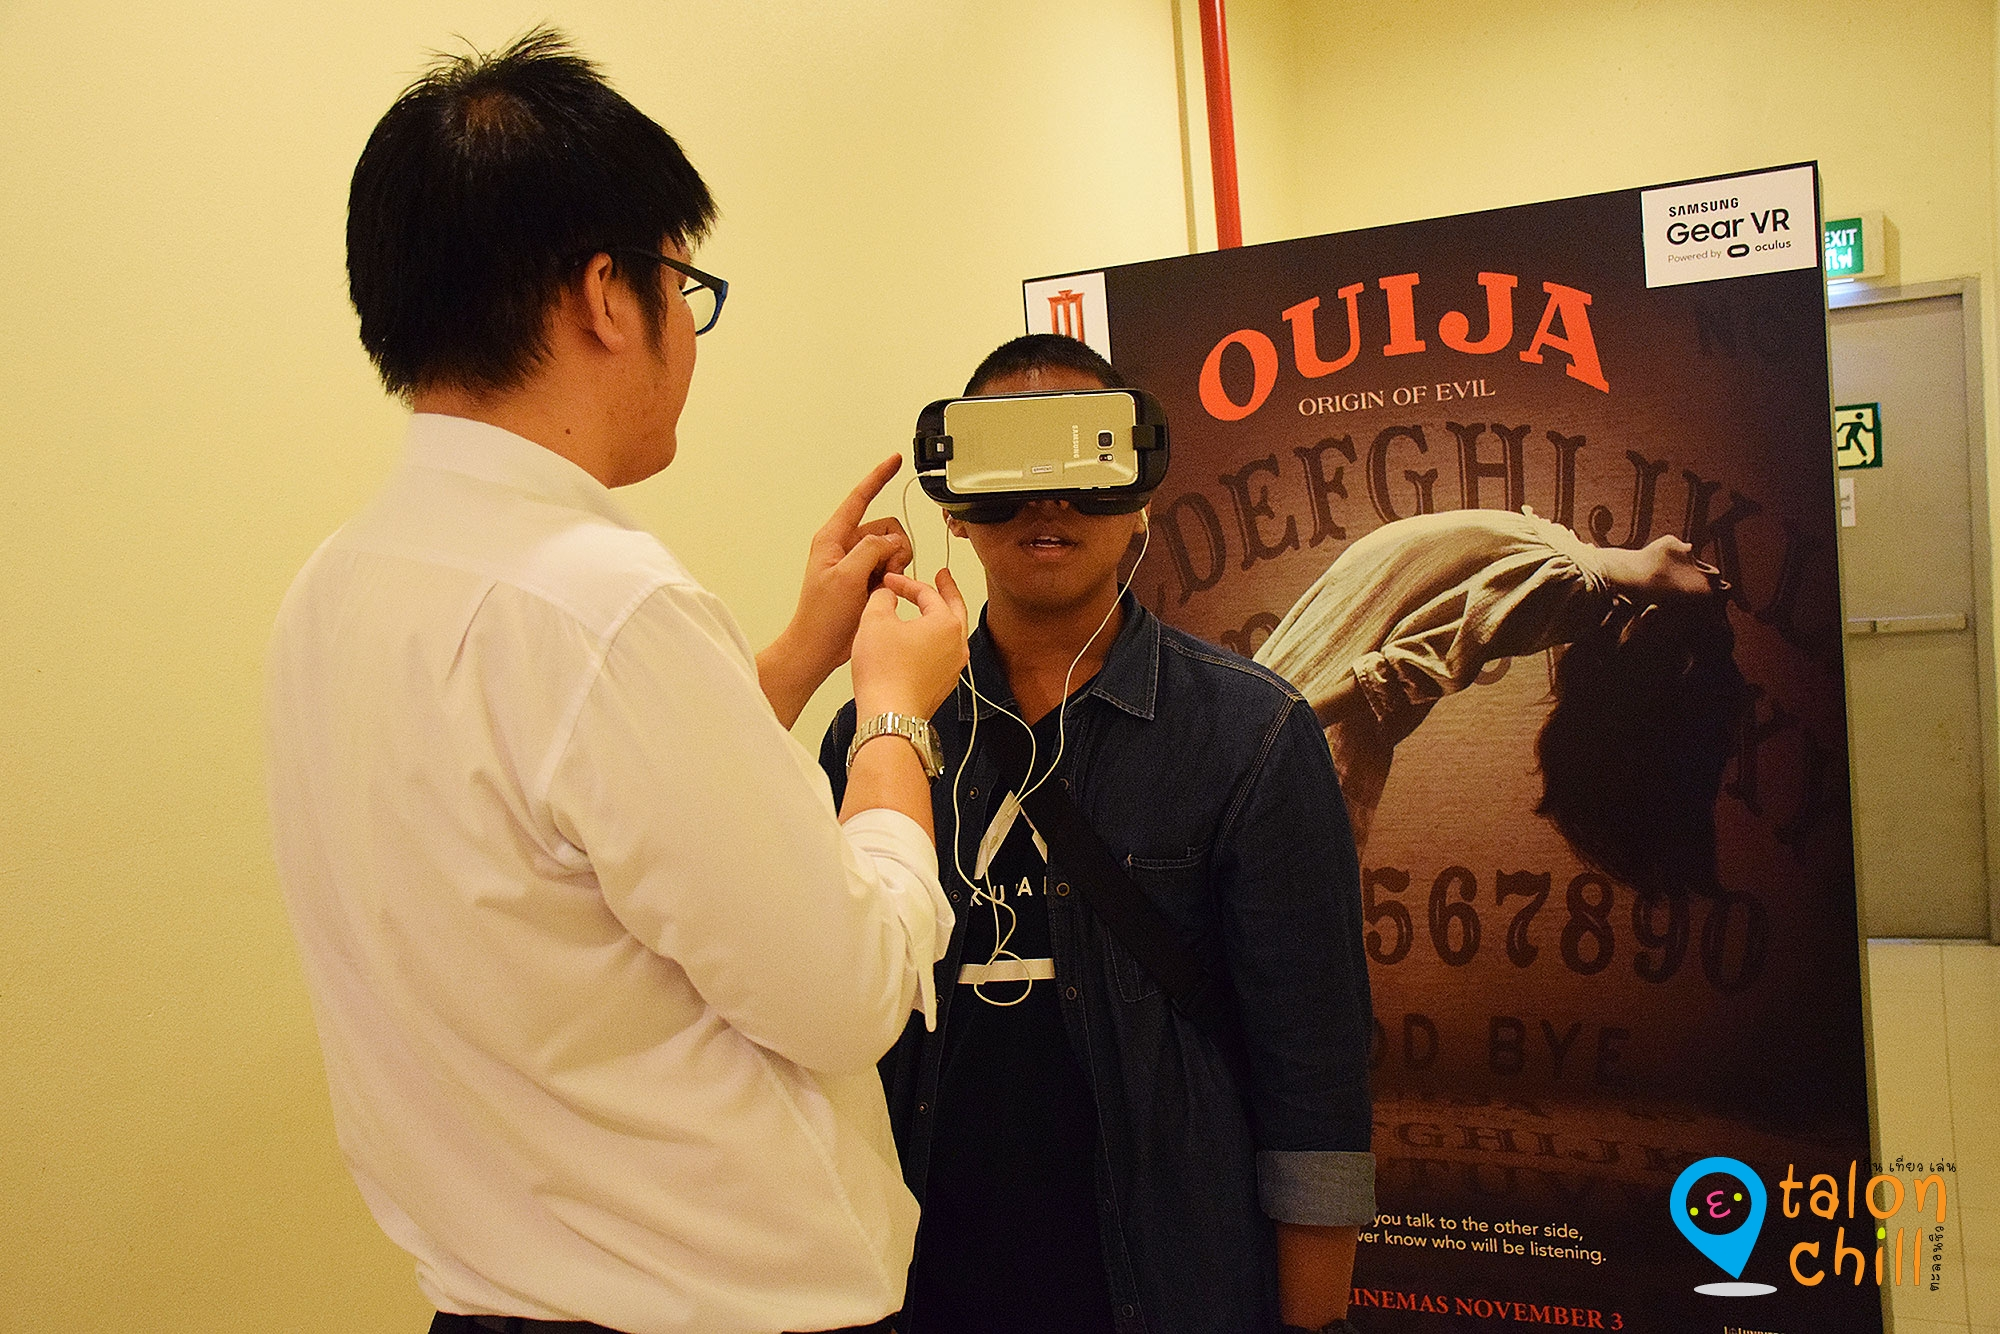 review samsung gear vr by oculus ouija 2 360 vr 10